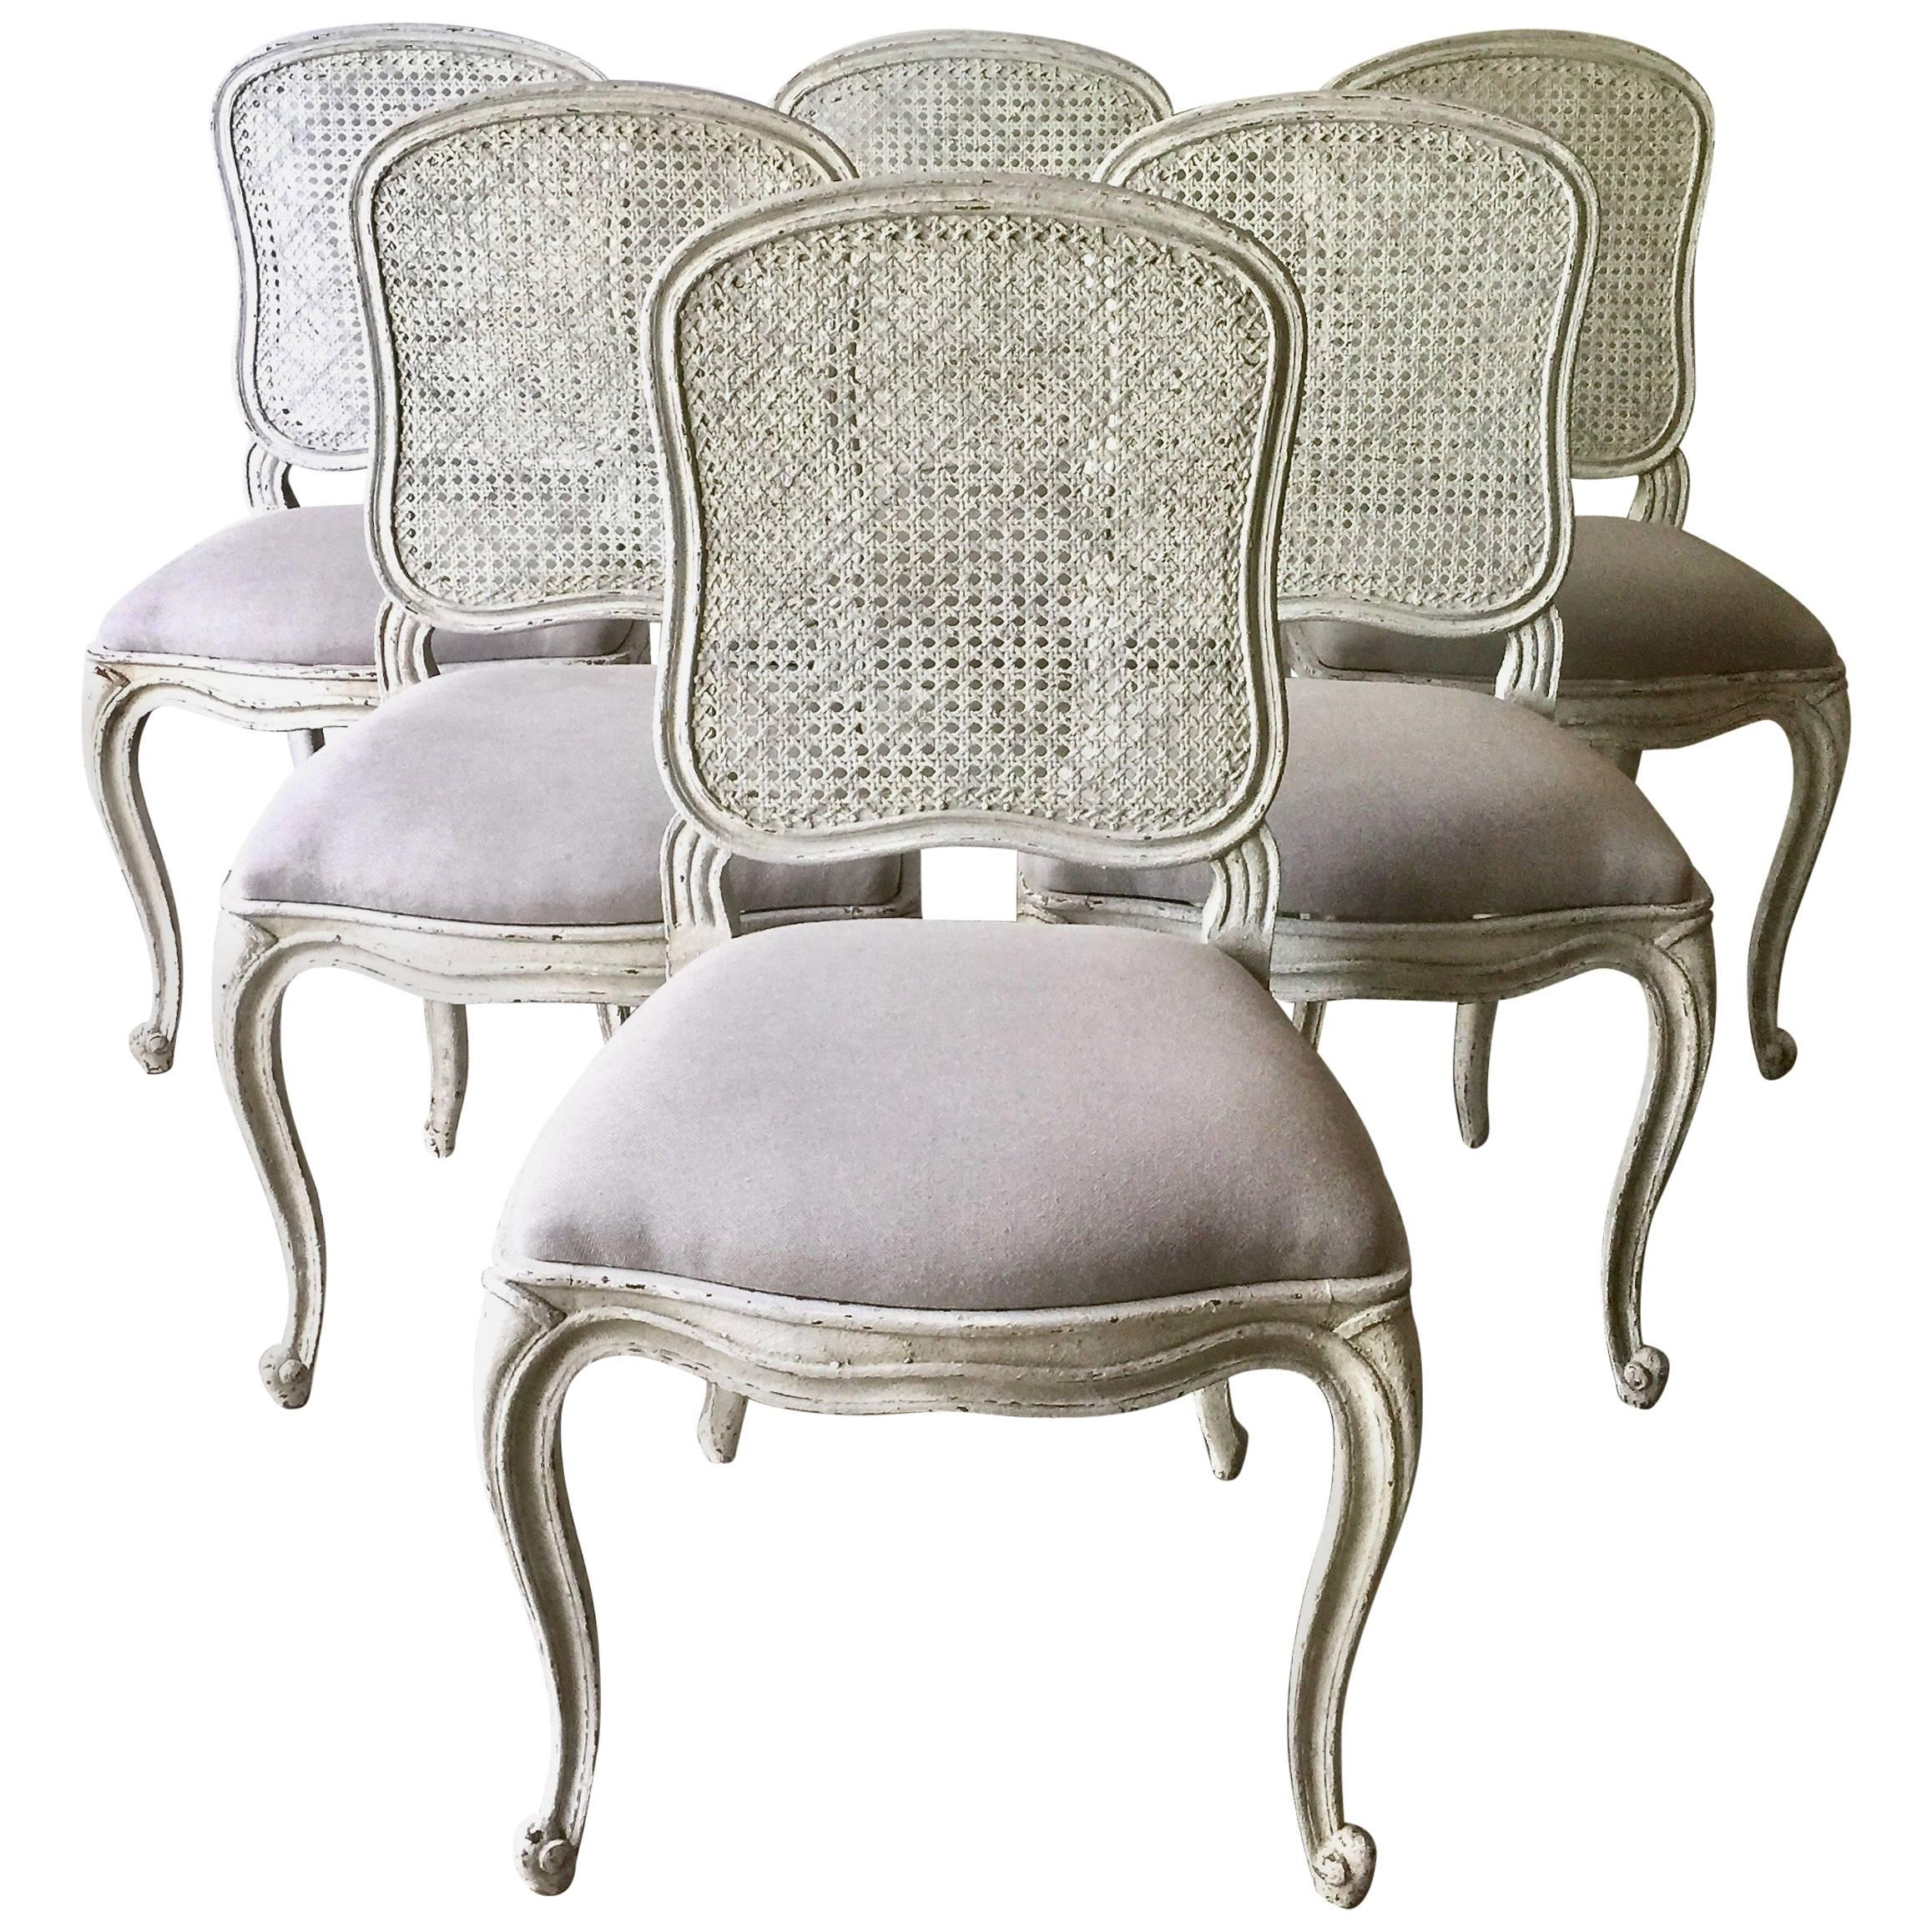 Set of Six, 19th Century French Louis XV Style Chairs with Cane Back